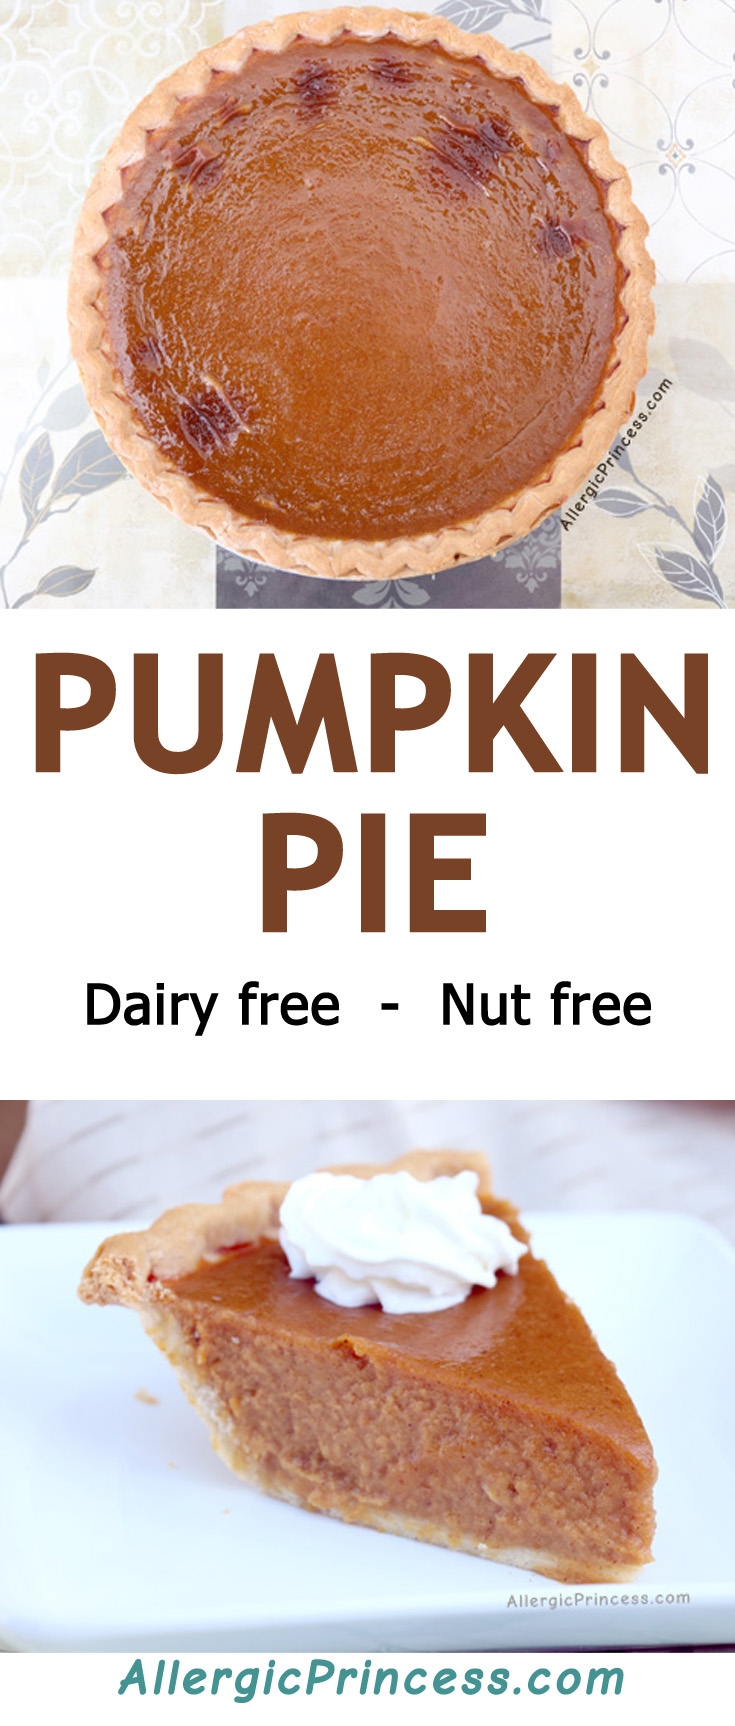 A dairy free, nut free mouth-watering pumpkin pie will really hit the spot!